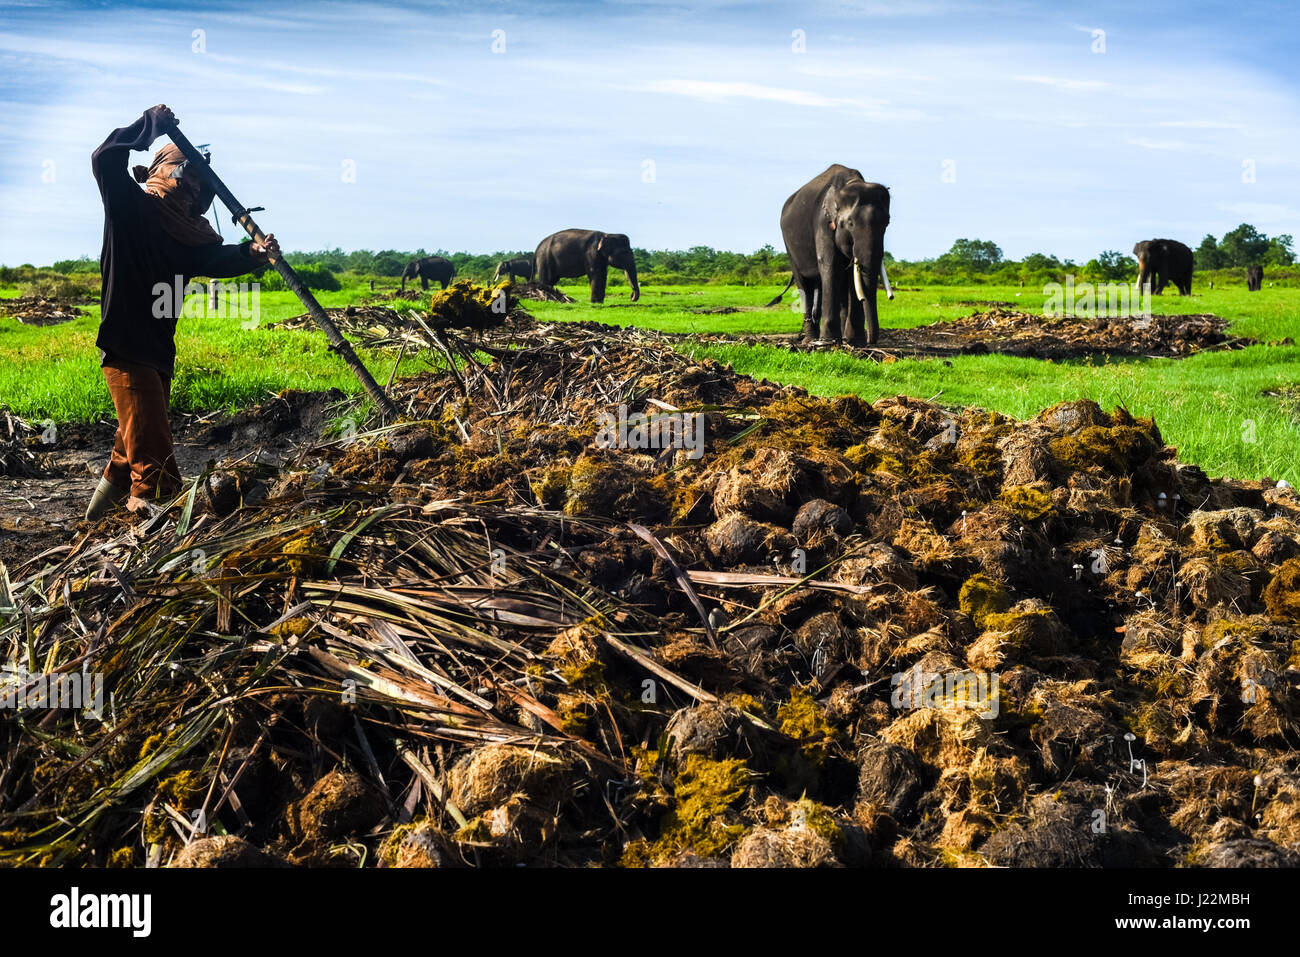 A worker cleaning up elephant dung in Way Kambas National Park, Sumatra, Indonesia. © Reynold Sumayku - Stock Image